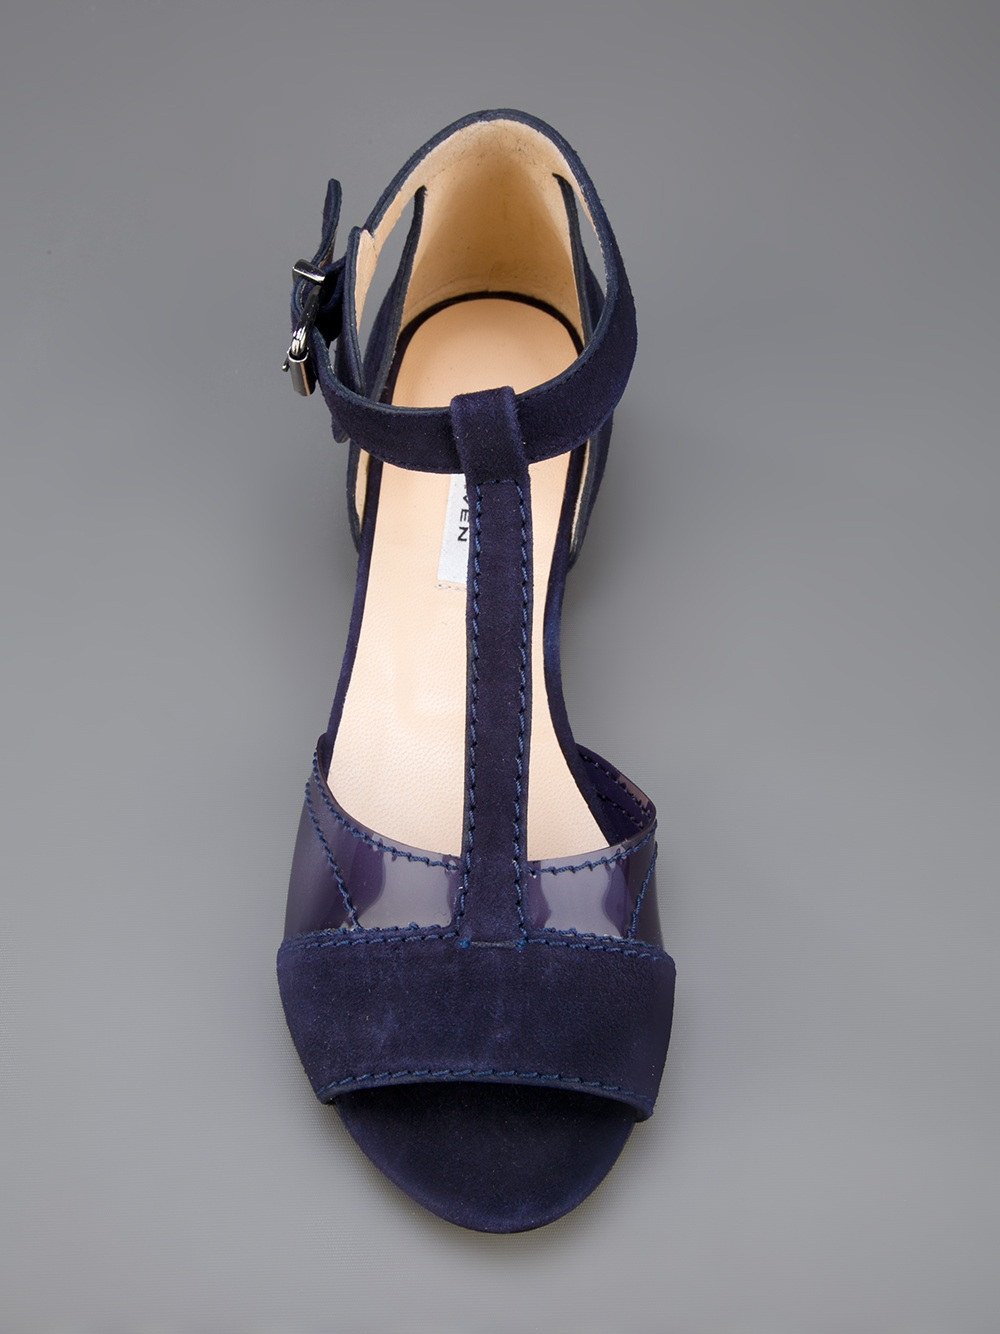 Carven Buckled Flat Sandals In Blue Navy Lyst